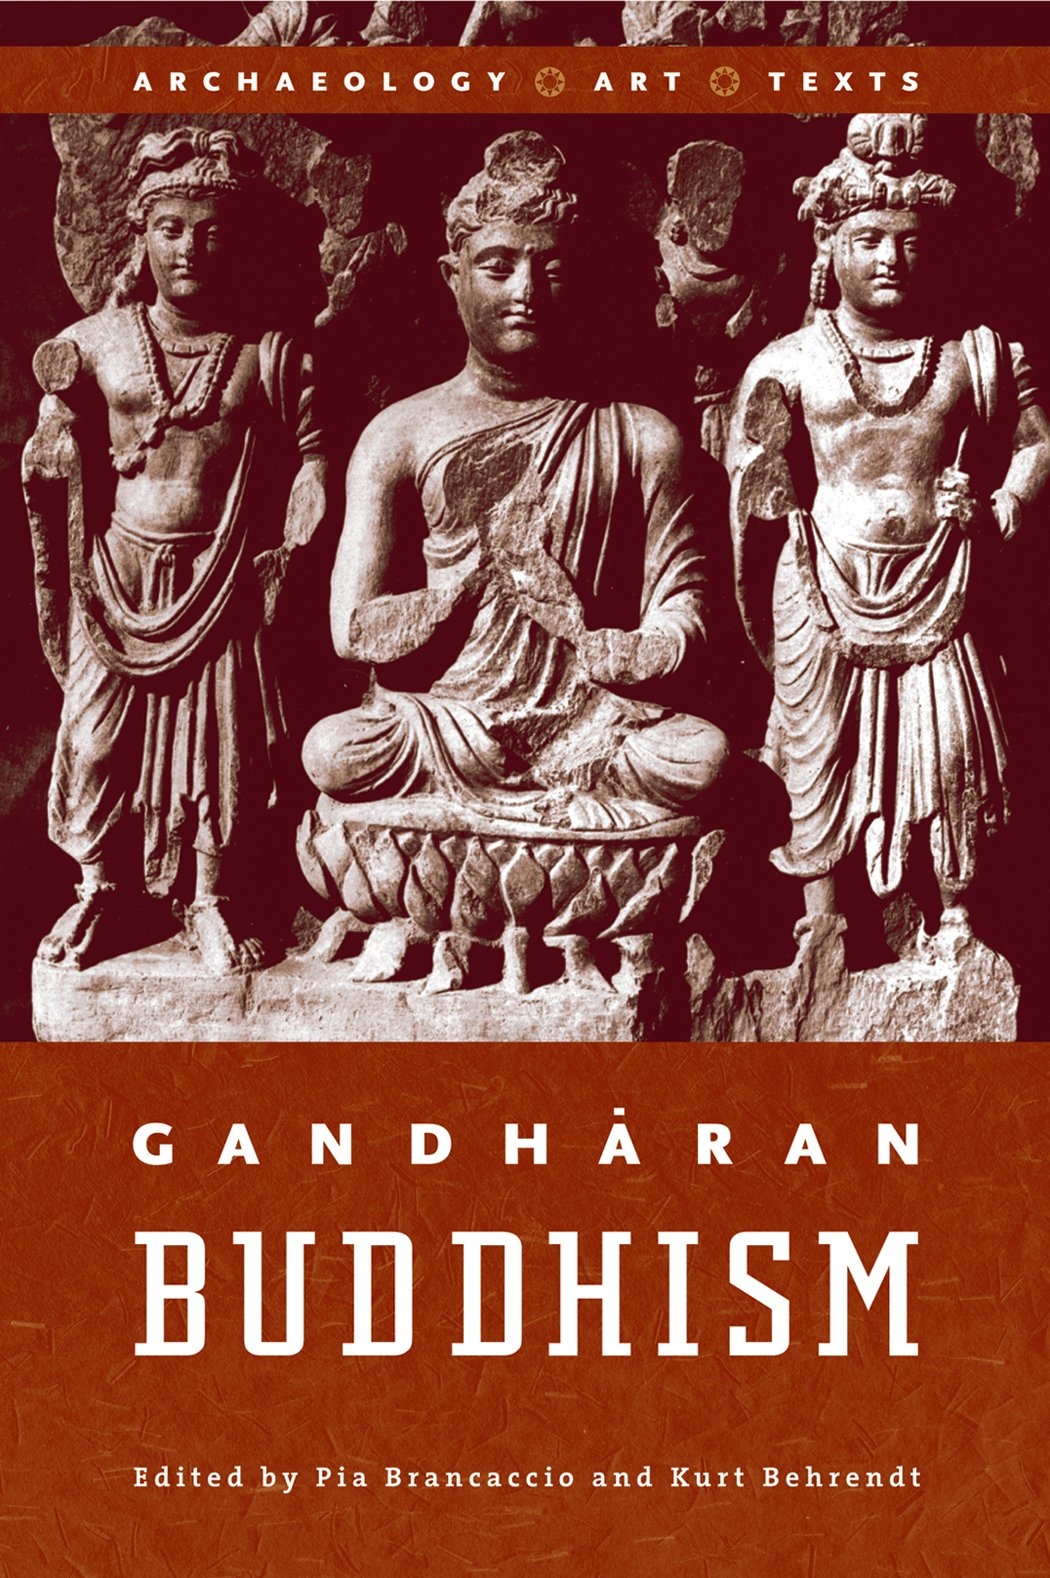 Gandharan Buddhism: Archaeology, Art, and Texts (Asian Religions and Society) ePub fb2 book